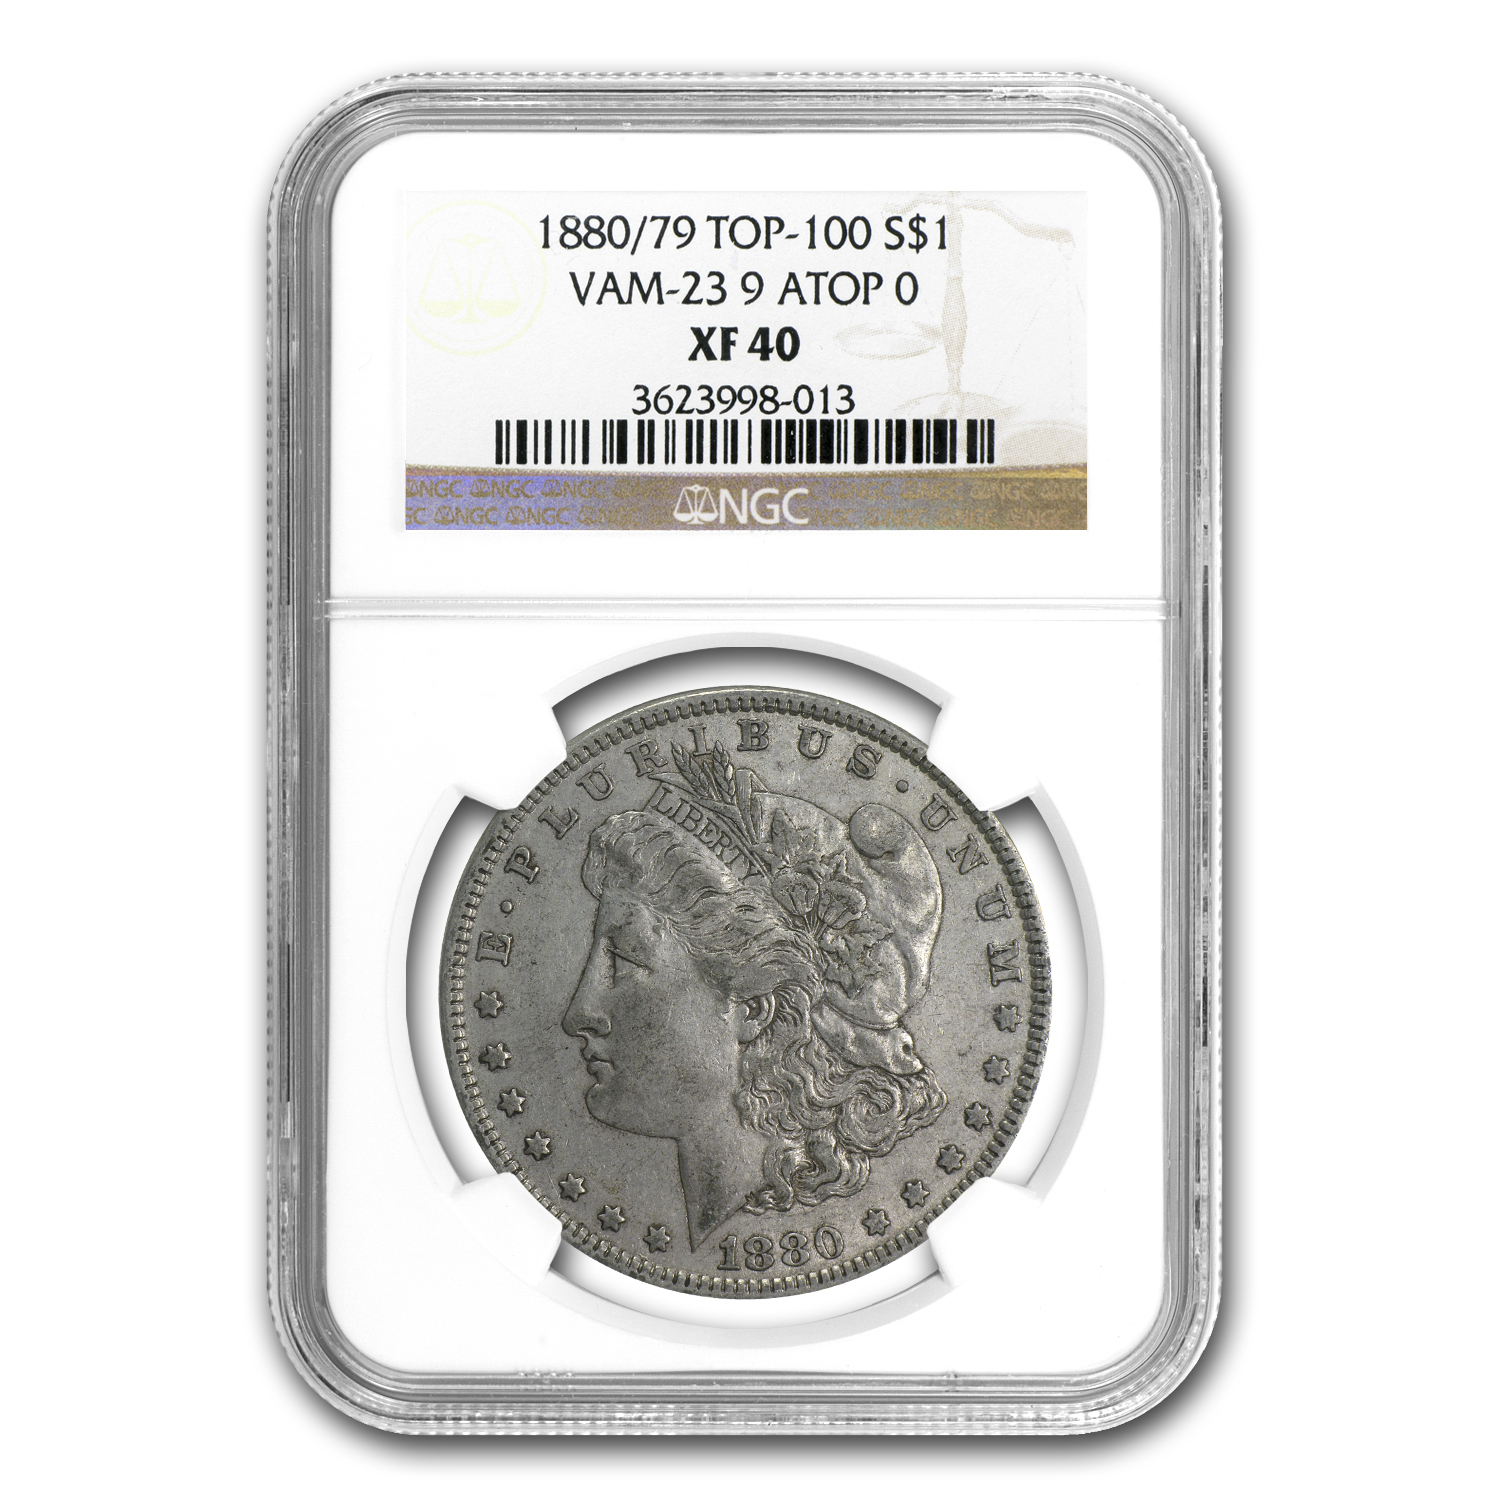 1880/79 Morgan Dollar - XF-40 NGC VAM-23 80/79 Overdate Top-100